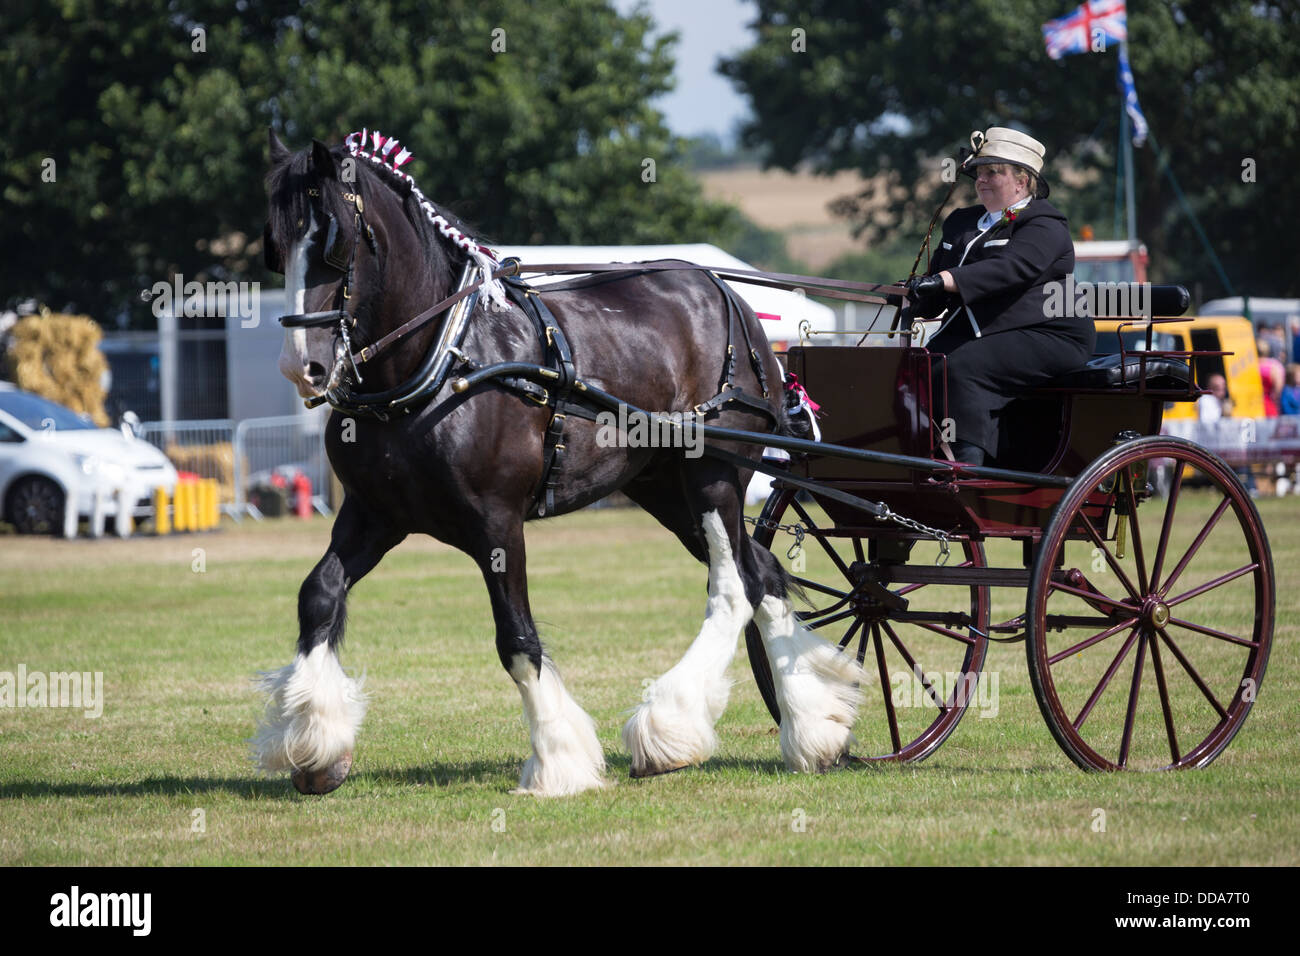 A traditional buggy and shire horse performing at a county show in England Stock Photo